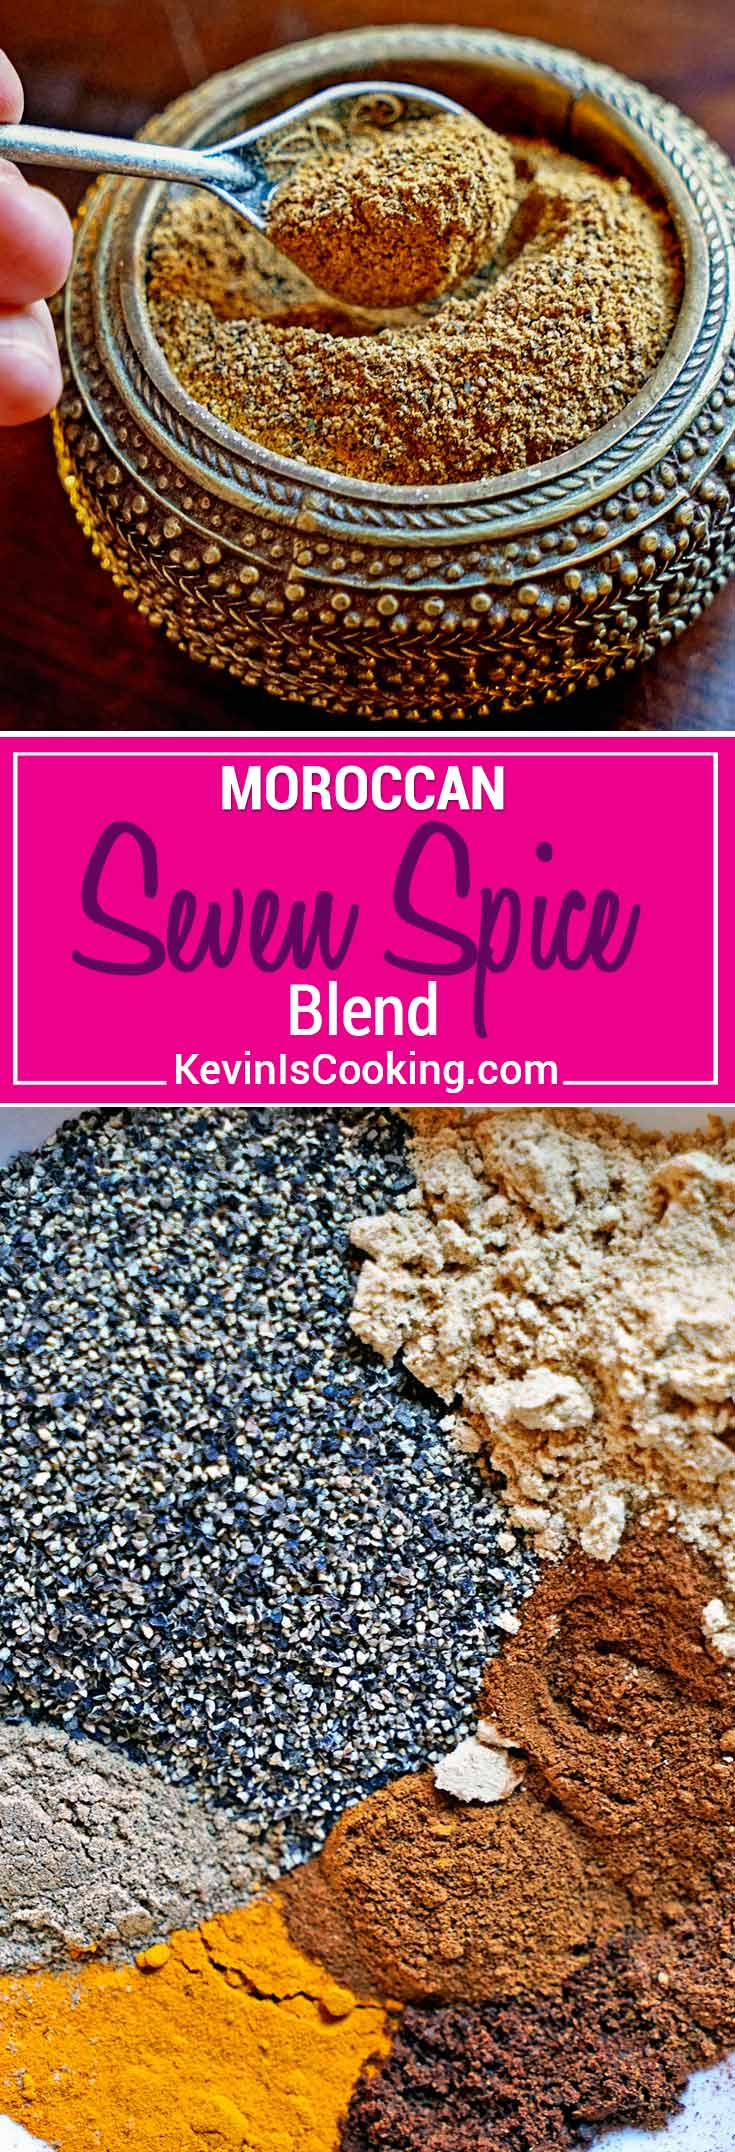 Moroccan Seven Spice Blend - a beautiful mixture of warm, ground spices that include black pepper, ginger, turmeric, cinnamon, cardamom, clove and nutmeg. An exotic and tasty blend for seasoning and dry rubs.